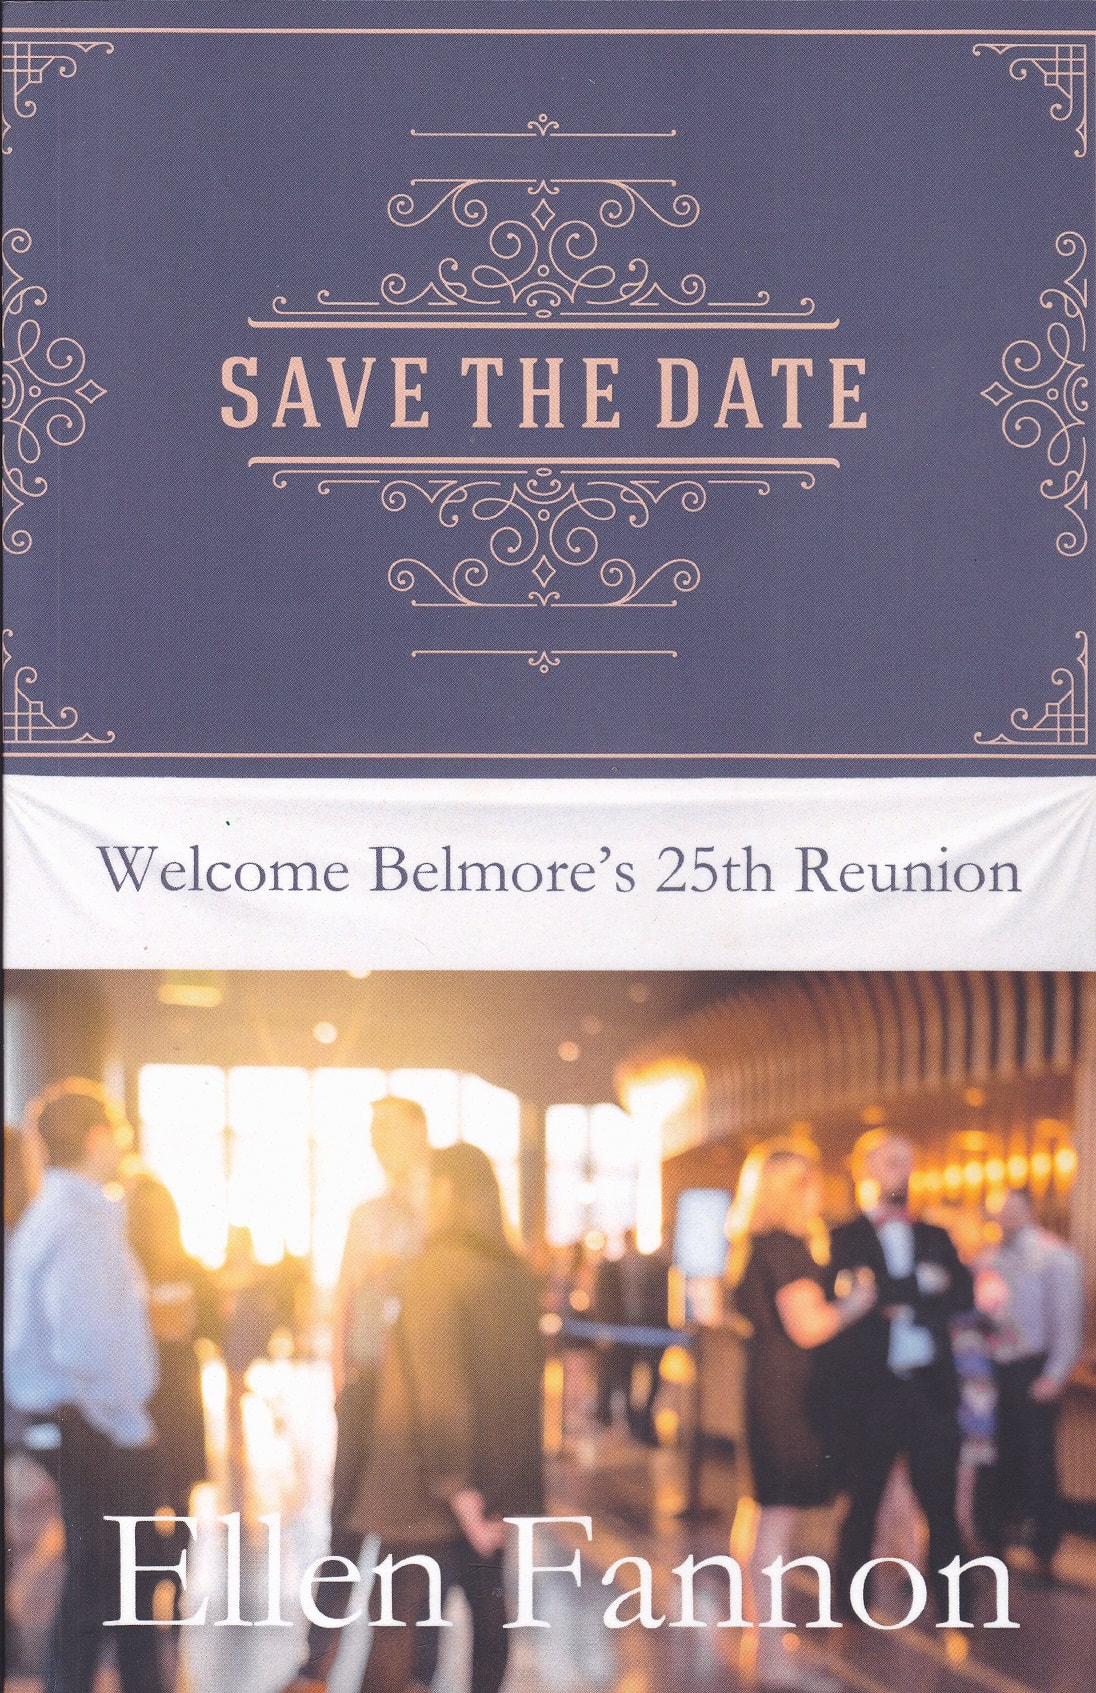 SAVE THE DATE by Ellen Fannon